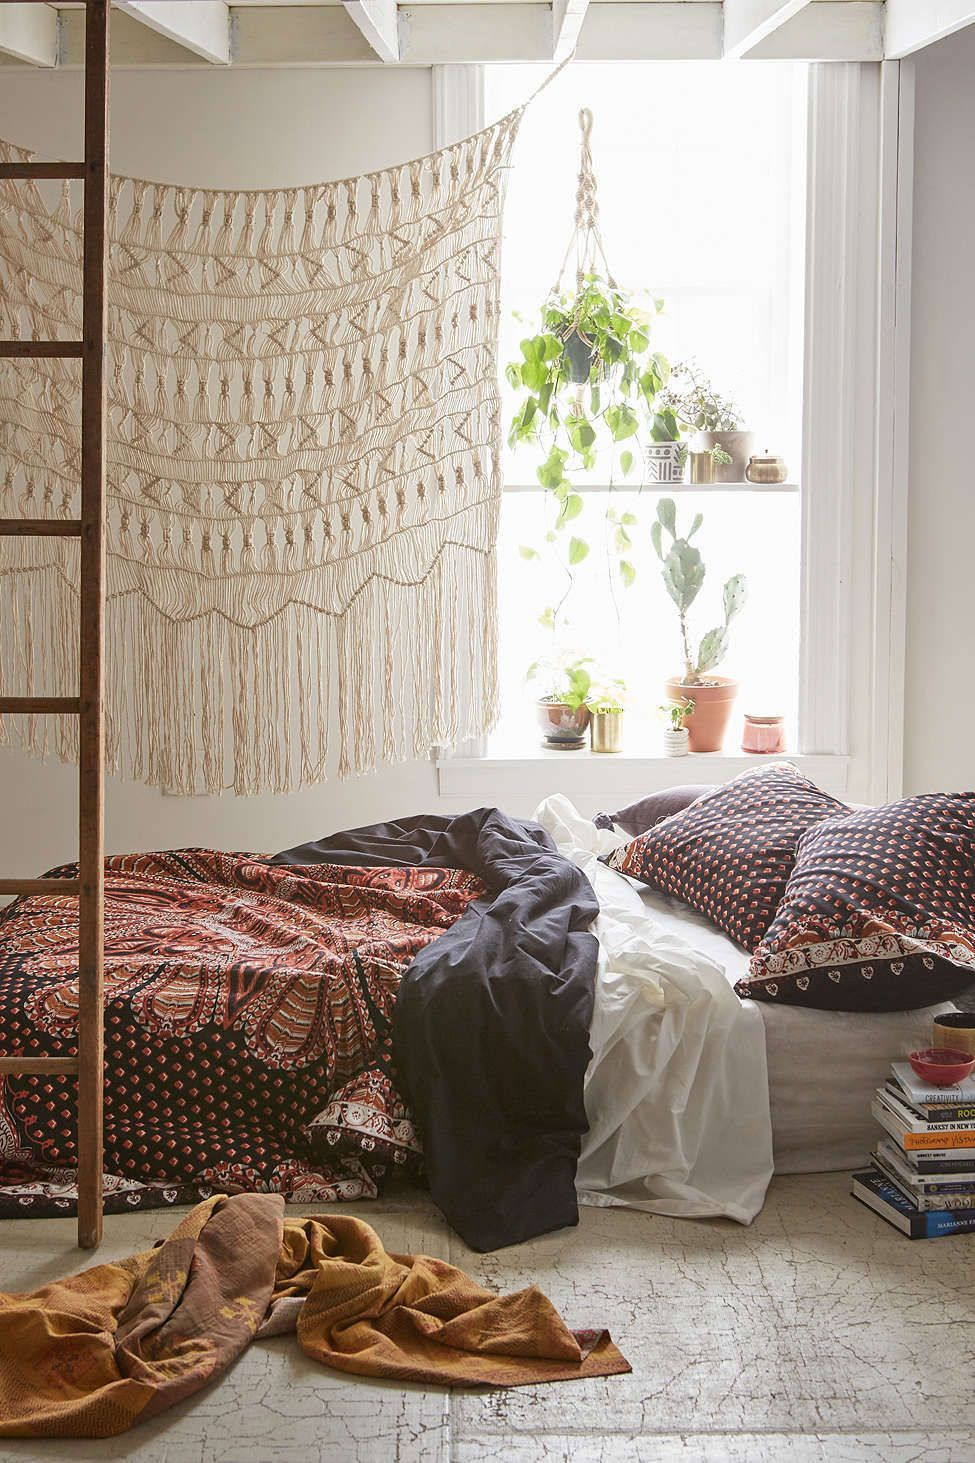 Dreamy boho bedroom (Daily Dream Decor) Bedroom decor